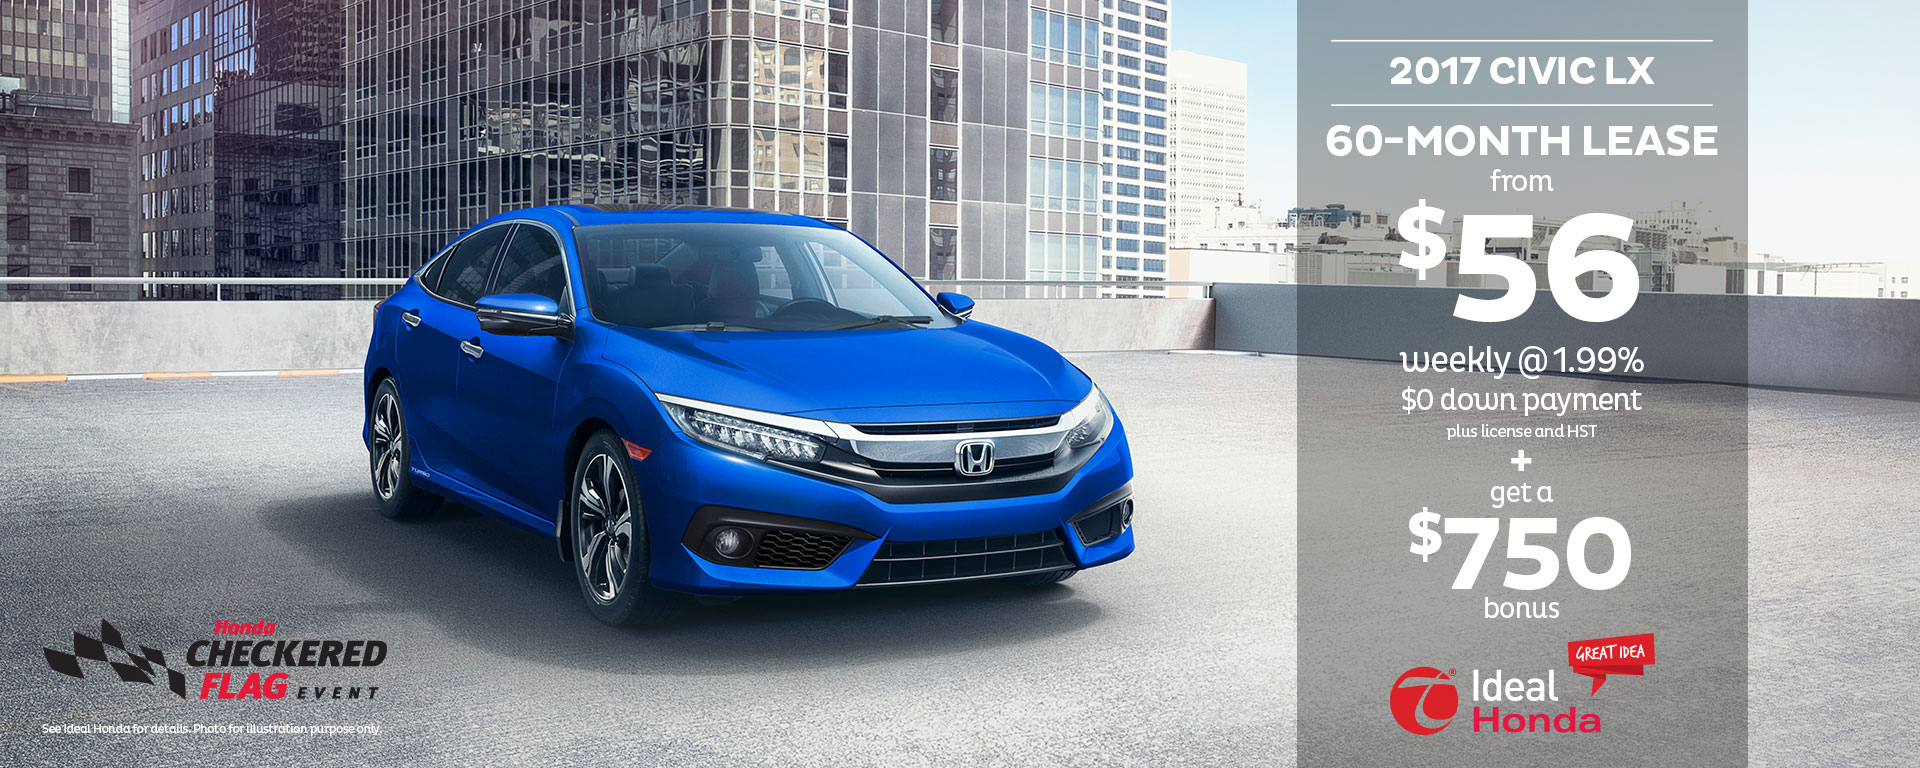 2017 Civic LX 60 Month Lease